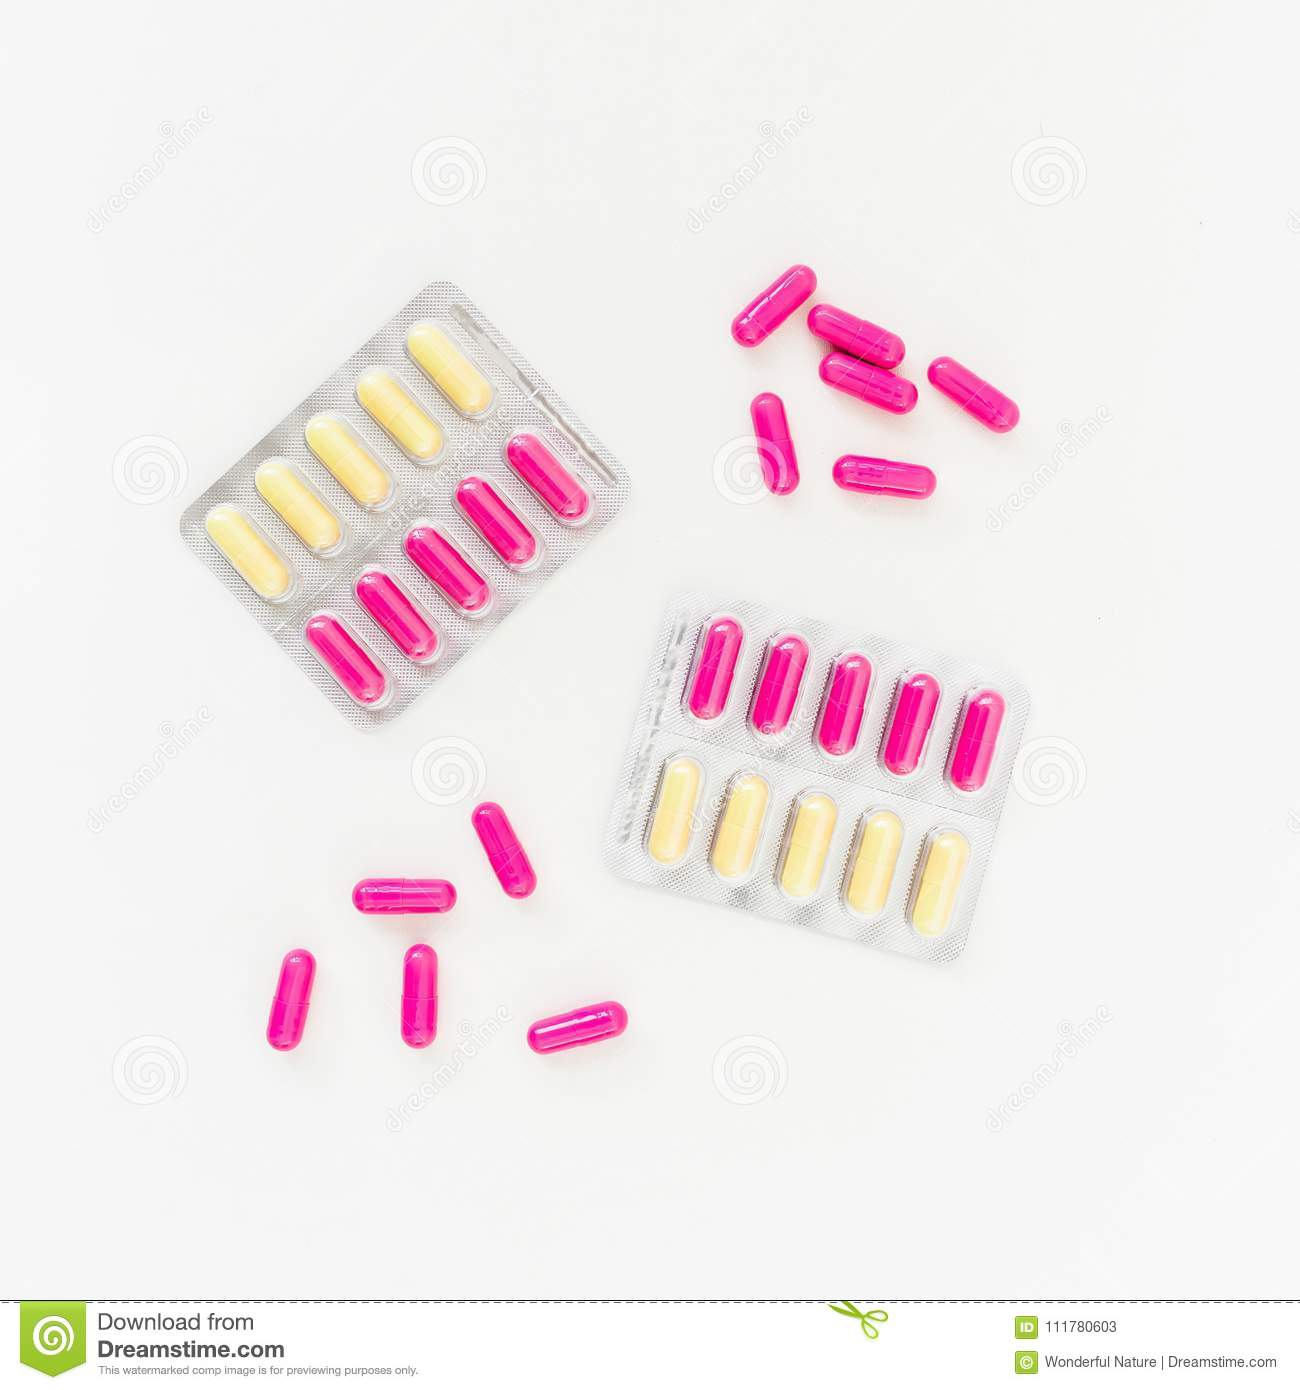 Healthy concept with vitamins on white background. Flat lay, top view. Medical concept